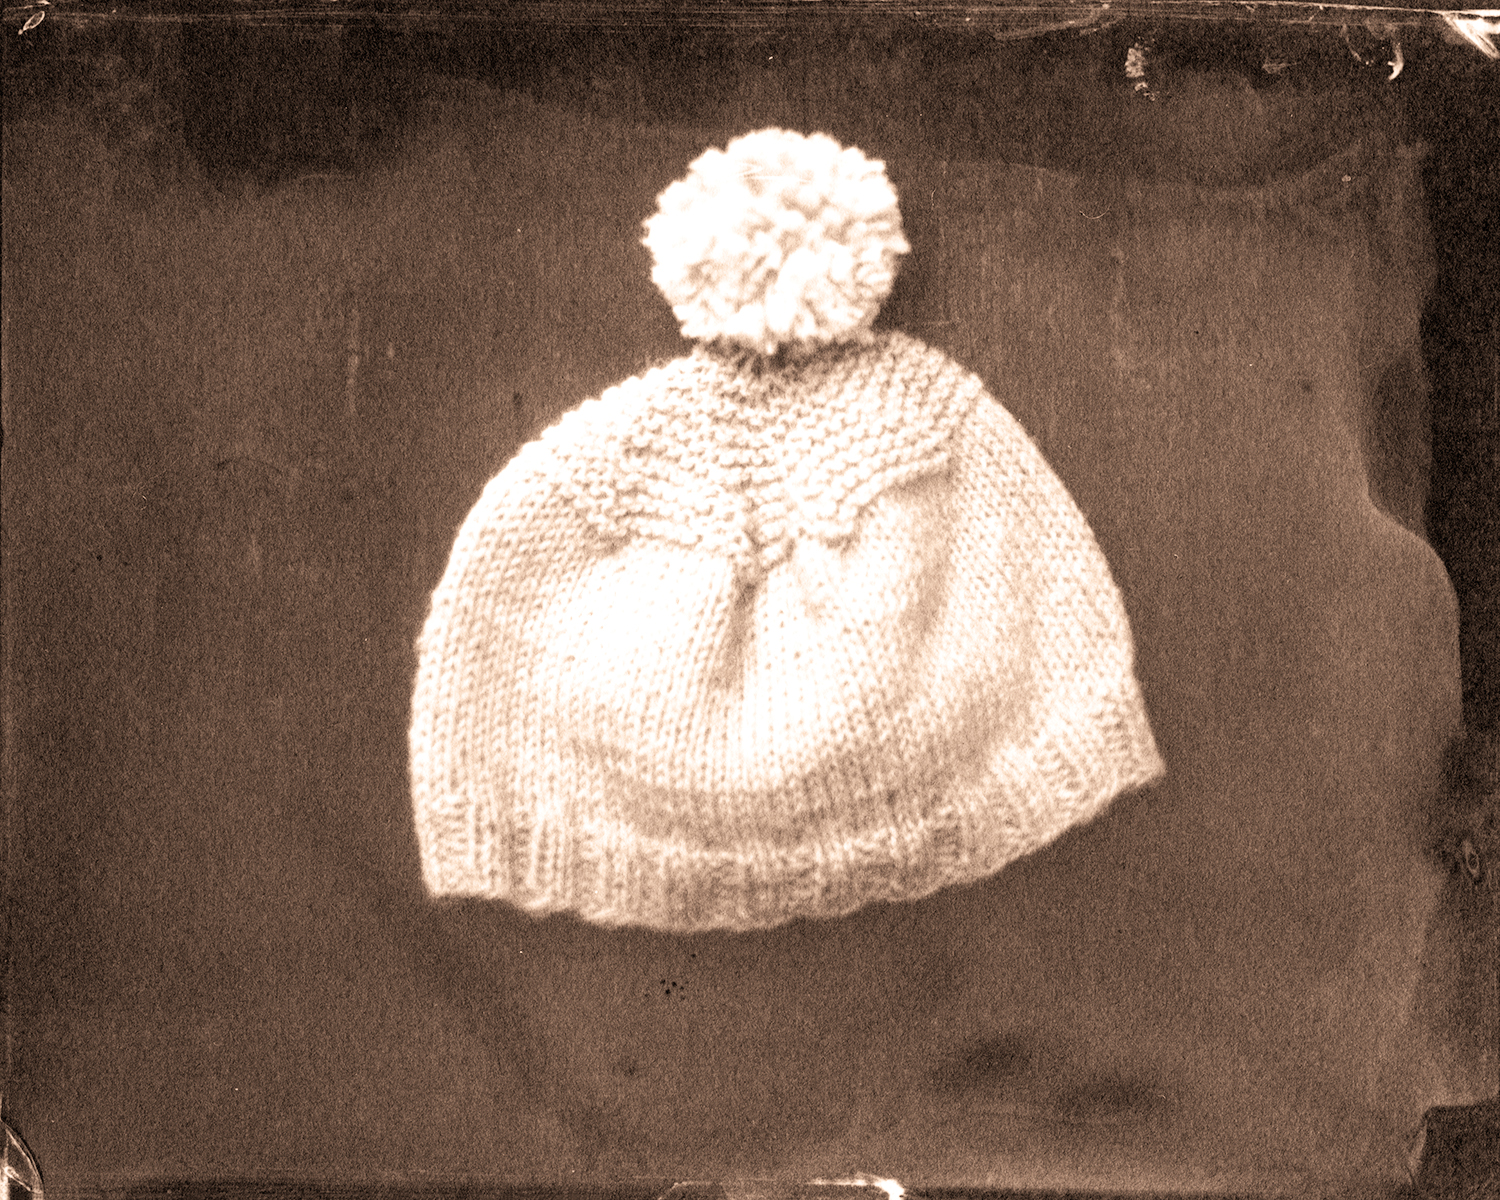 The birth cap she knitted for him.